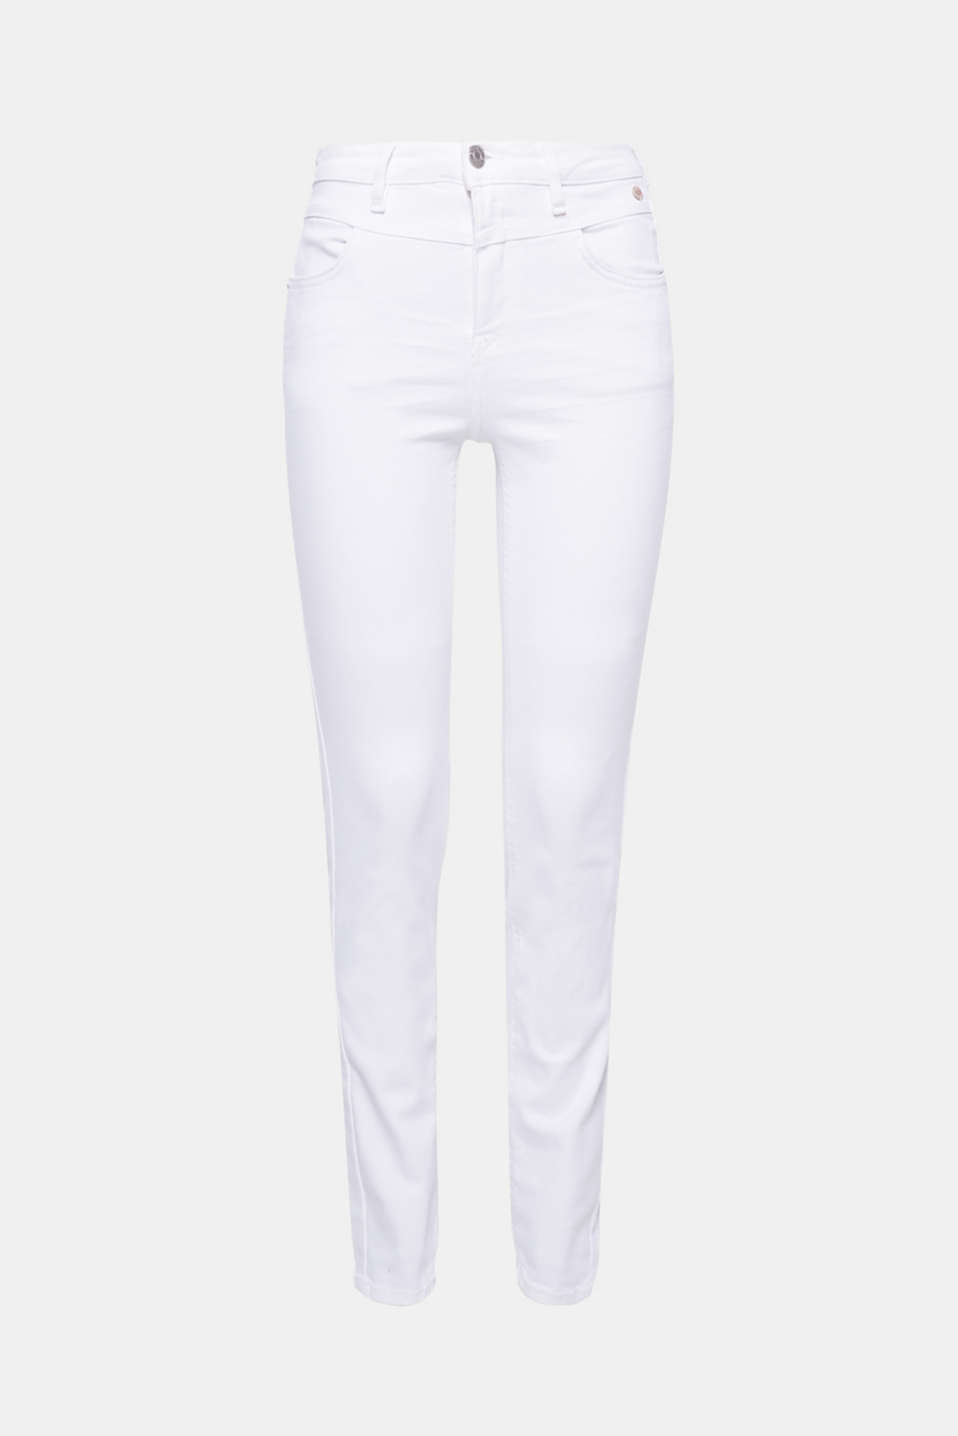 With a high waistband, slim fit and figure-shaping denim fabric, these jeans conjure up a top silhouette!